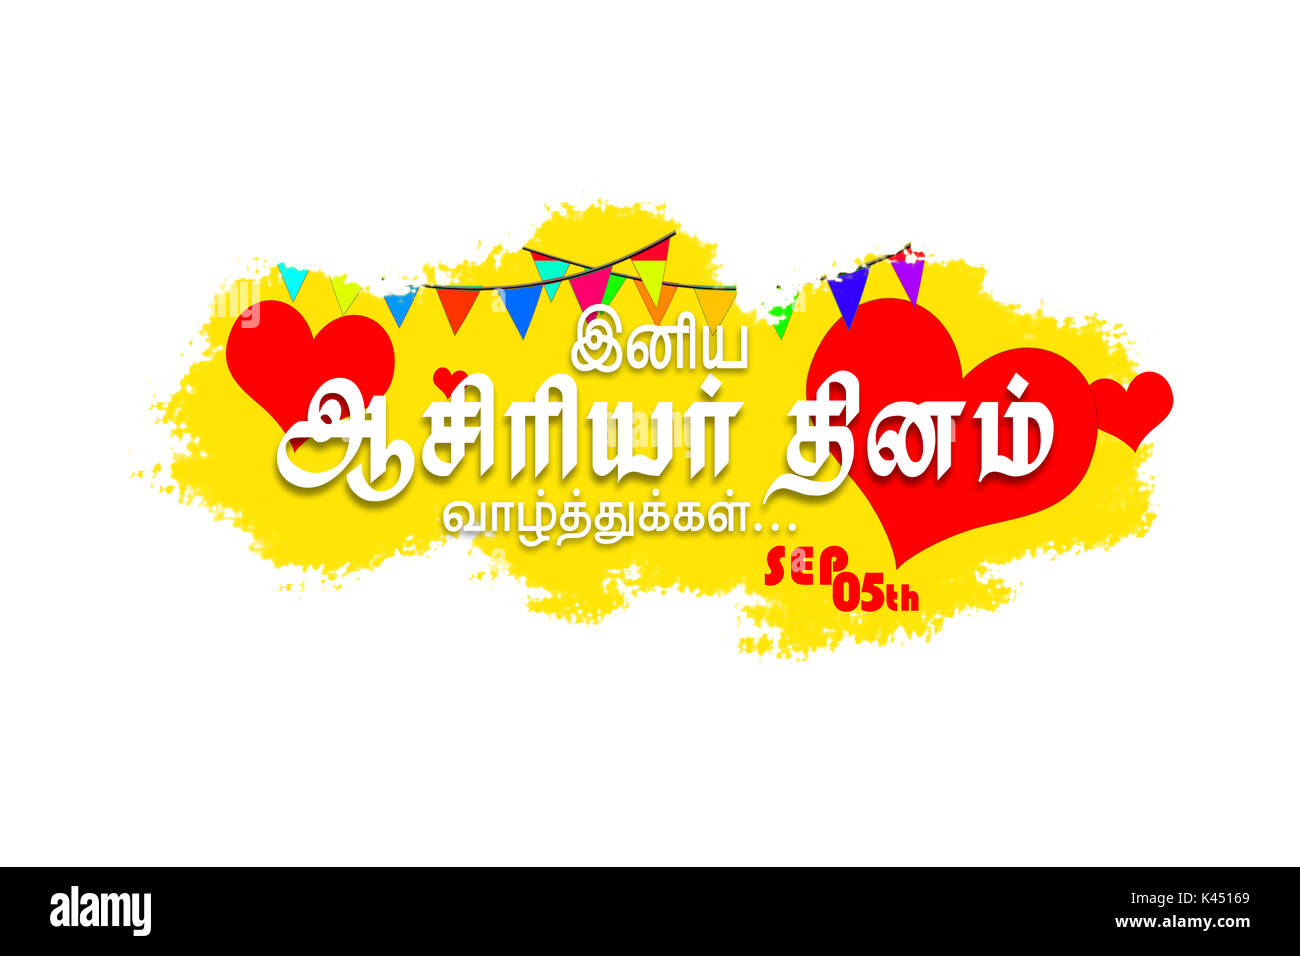 Happy teachers day greeting card in tamil stock photo 157462657 alamy happy teachers day greeting card in tamil kristyandbryce Choice Image